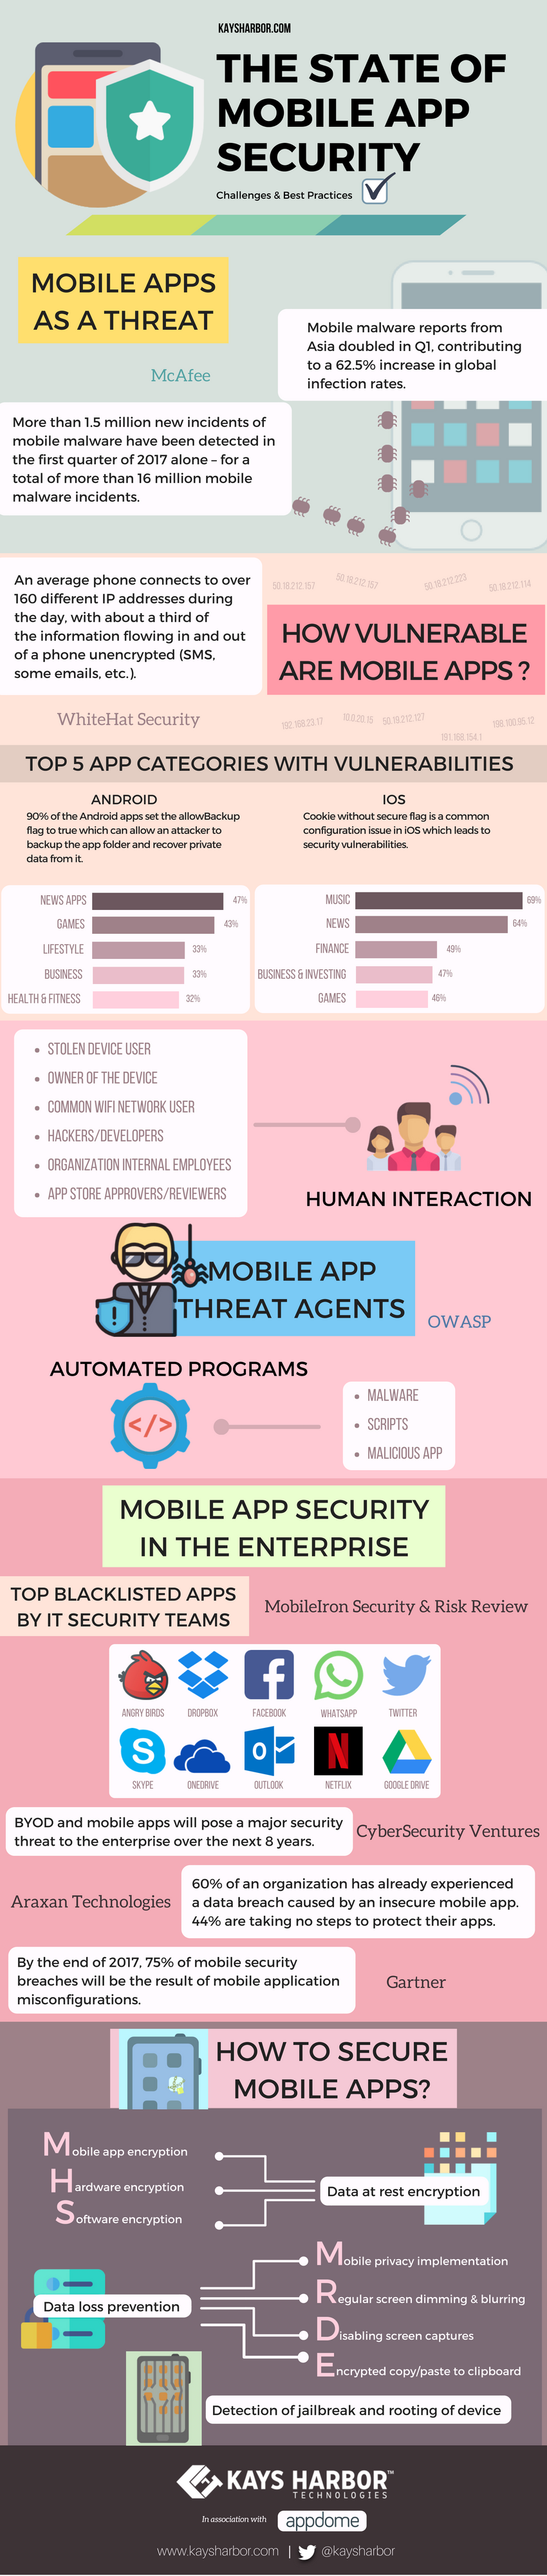 the-state-of-mobile-app-security-infographic